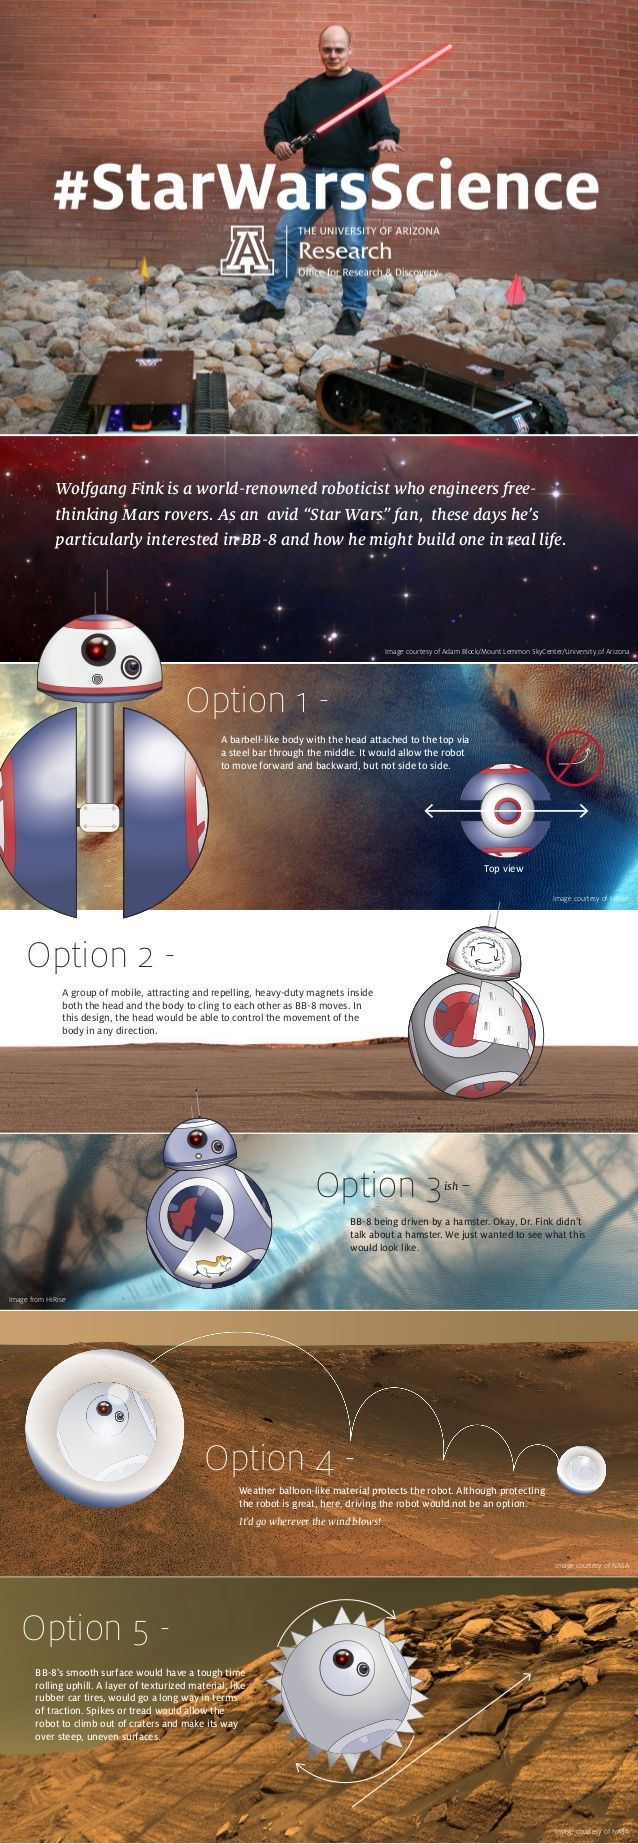 How could BB-8 work? Univeristy of Arizona researcher comments